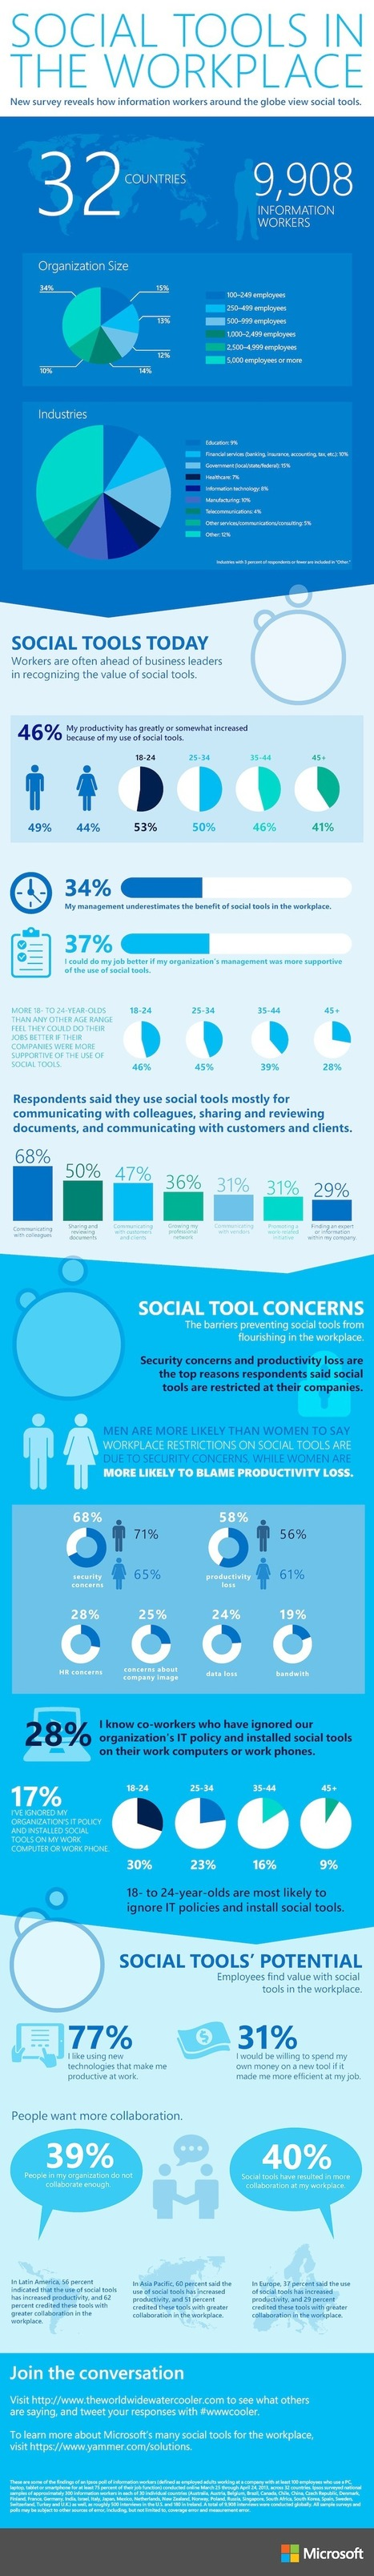 Social Tools in the Workplace: a Microsoft survey | Utilising Social Media | Scoop.it